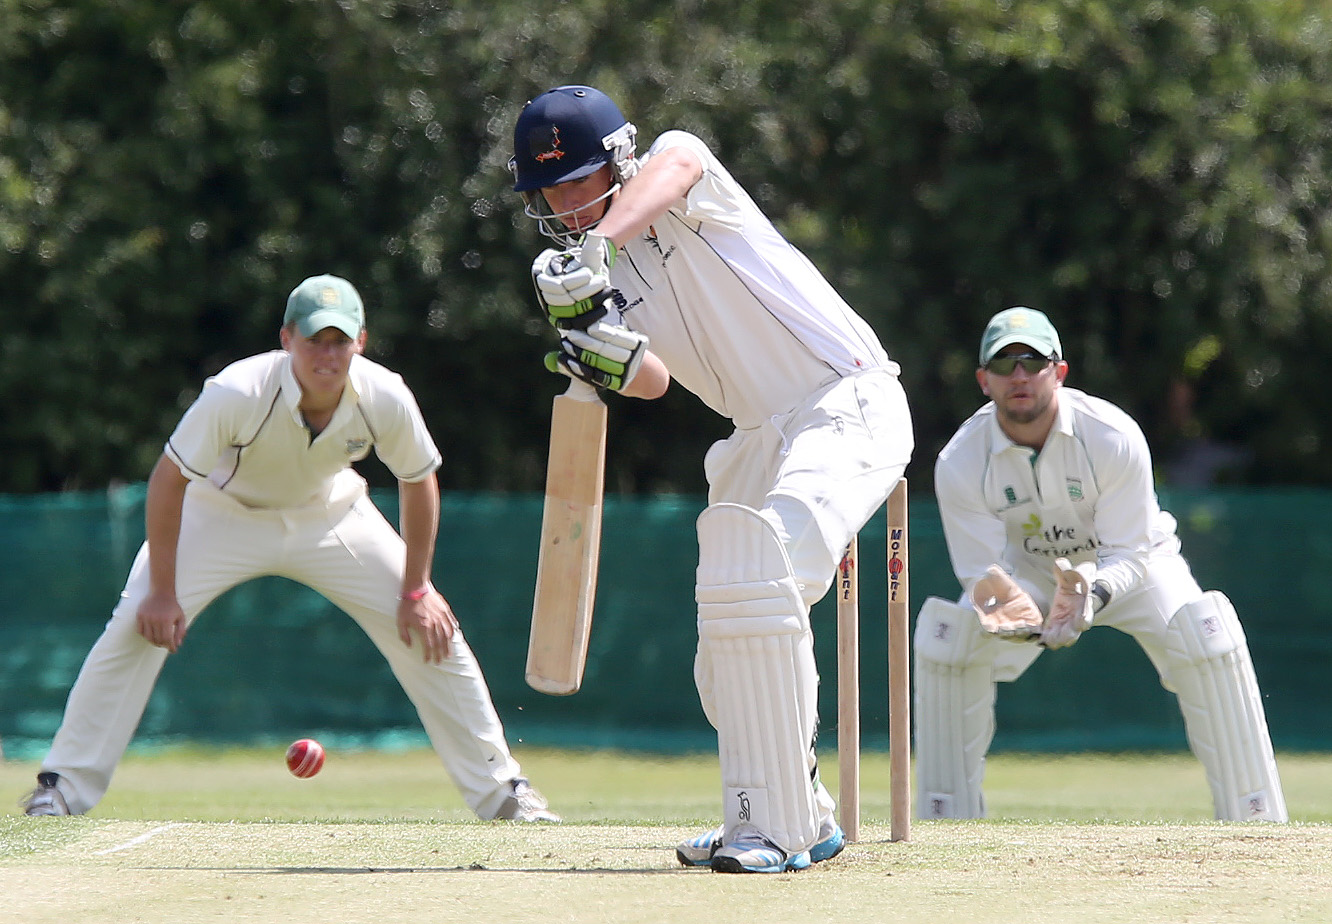 Chingford and Chelmsford go head-to-head. Picture: Mark Soanes